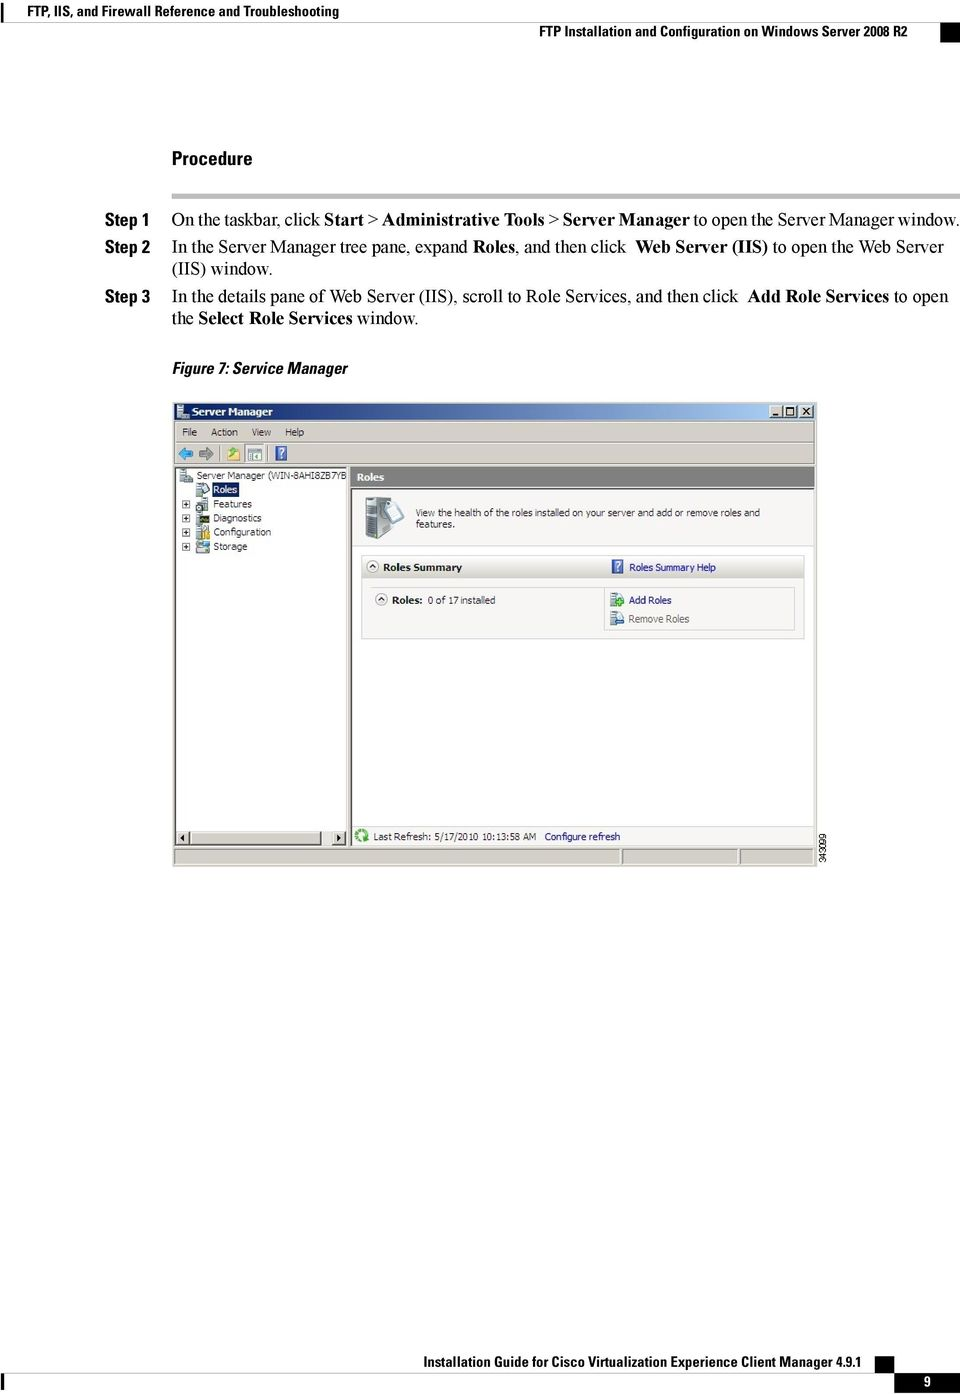 In the Server Manager tree pane, expand Roles, and then click Web Server (IIS) to open the Web Server (IIS) window.